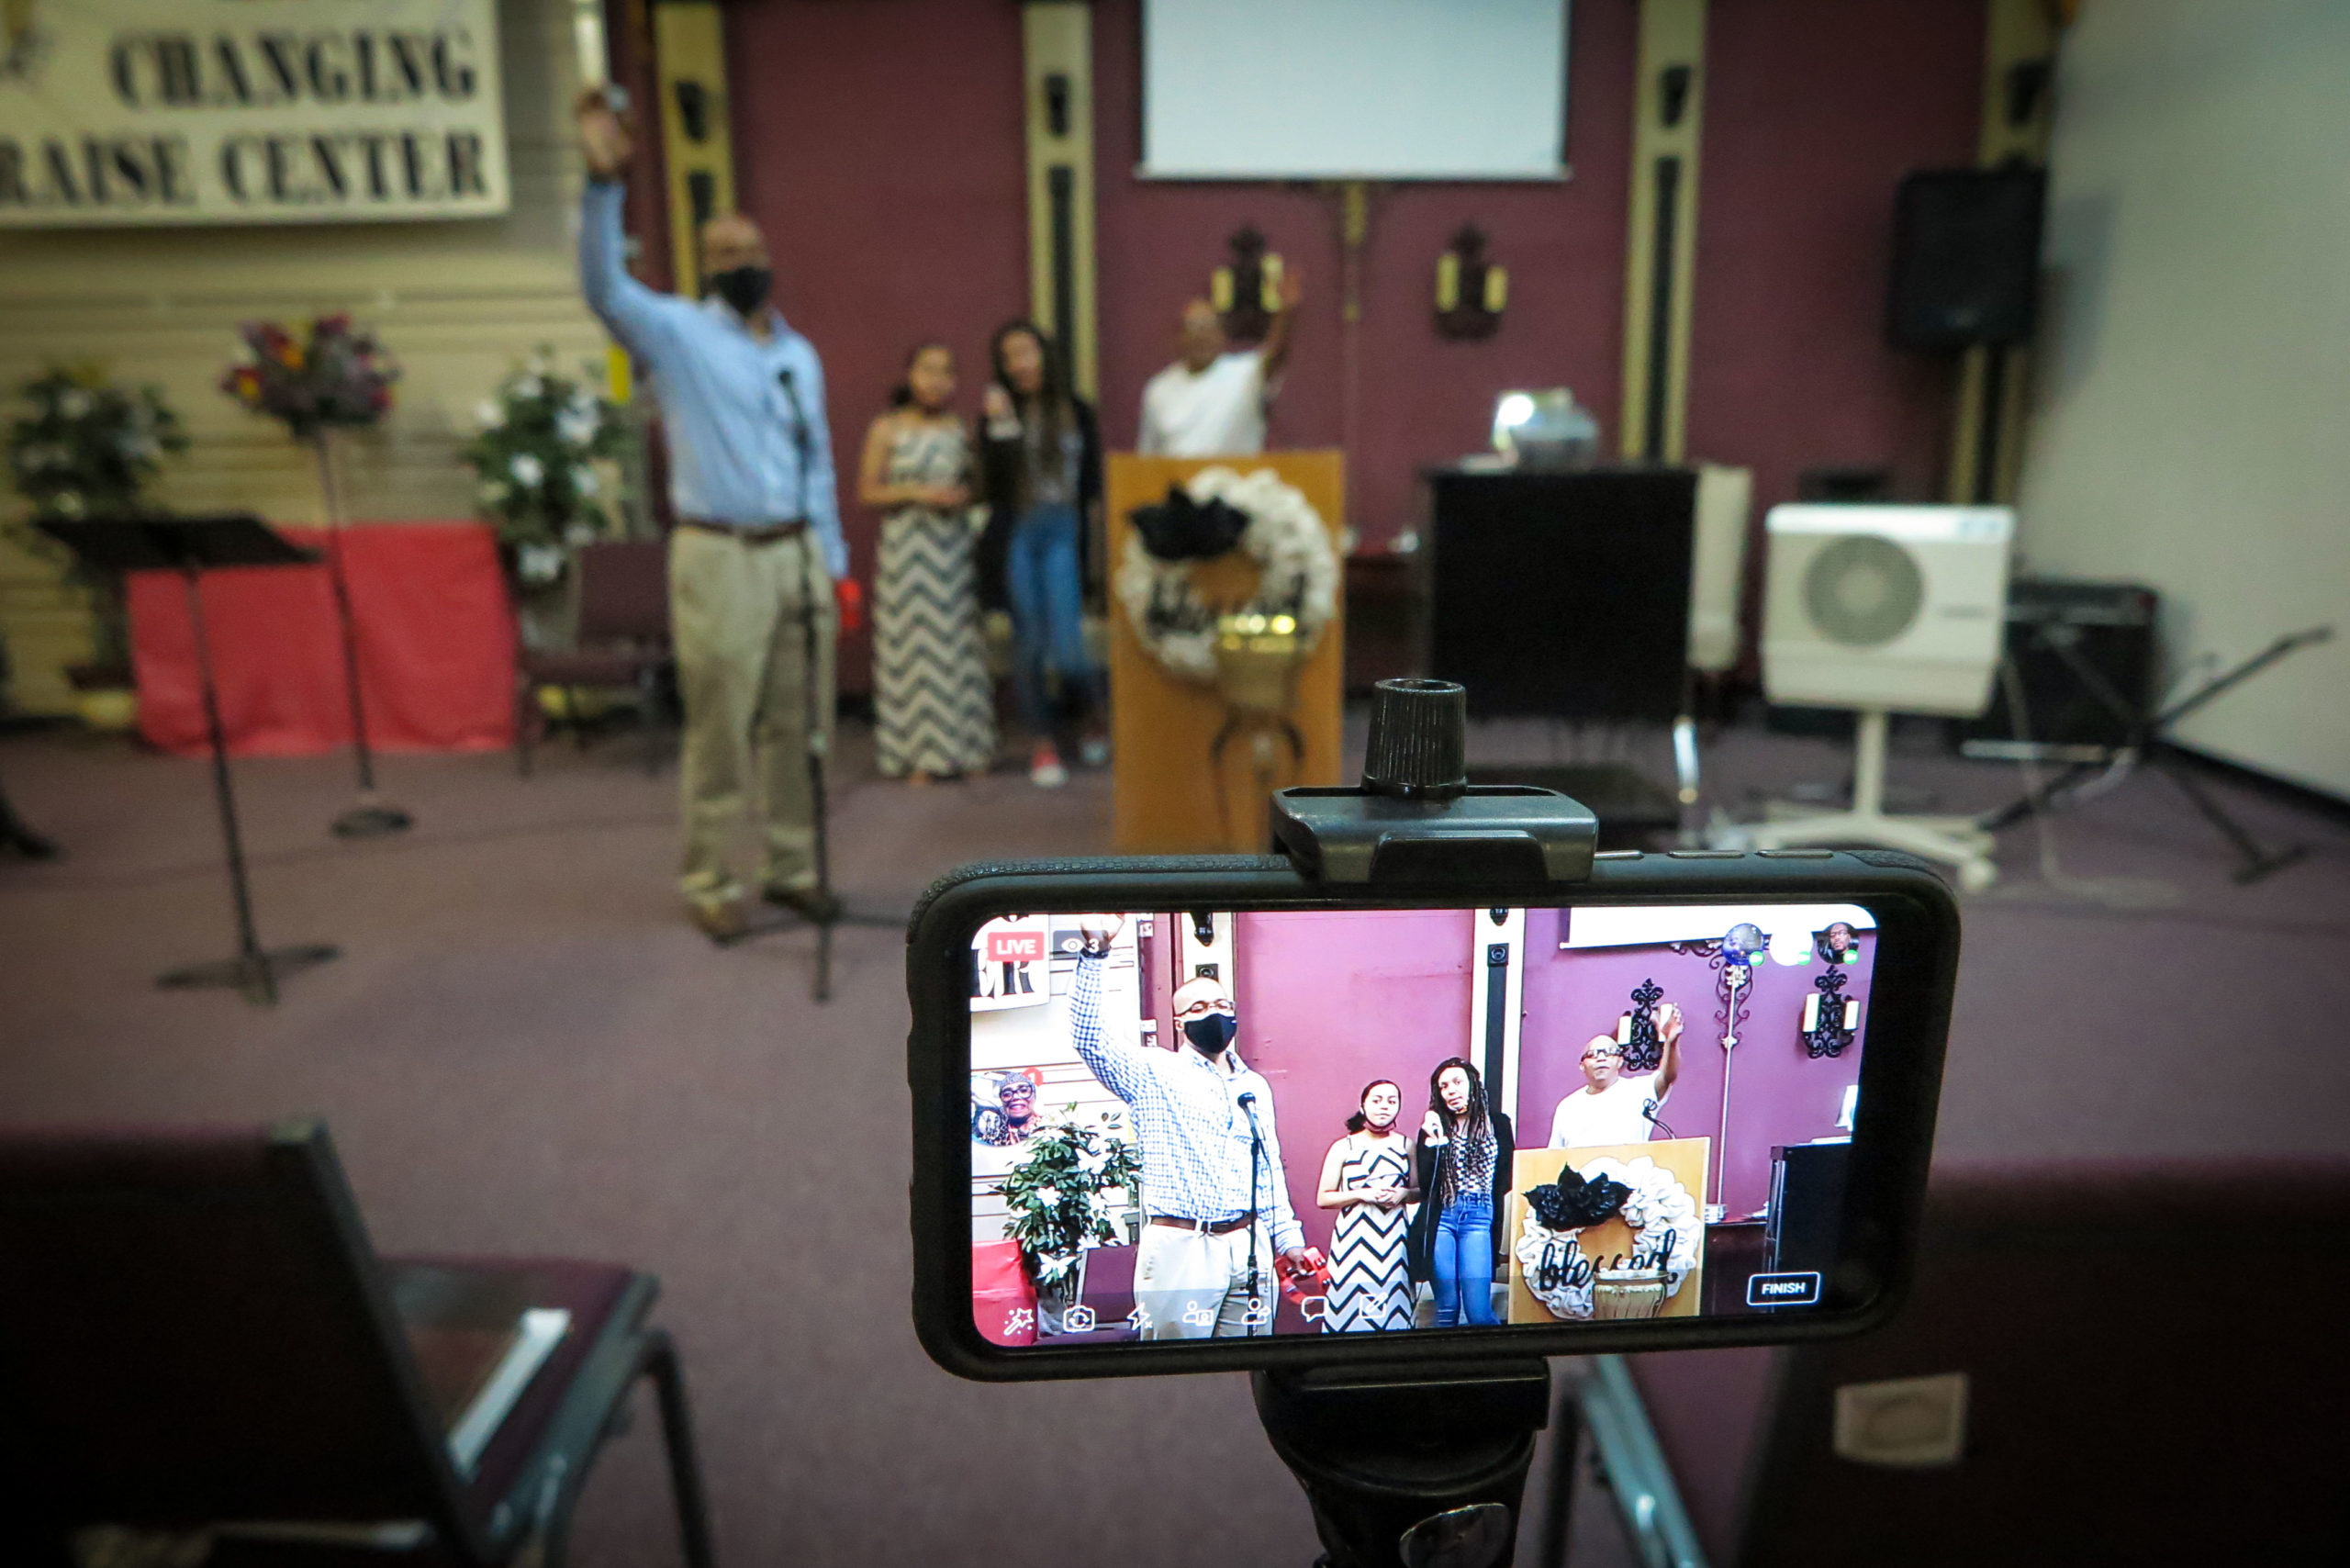 Pastor Terry Thomas (right) has started in-person services at his Lifting up Jesus church for the first time since the start of the coronavirus pandemic.